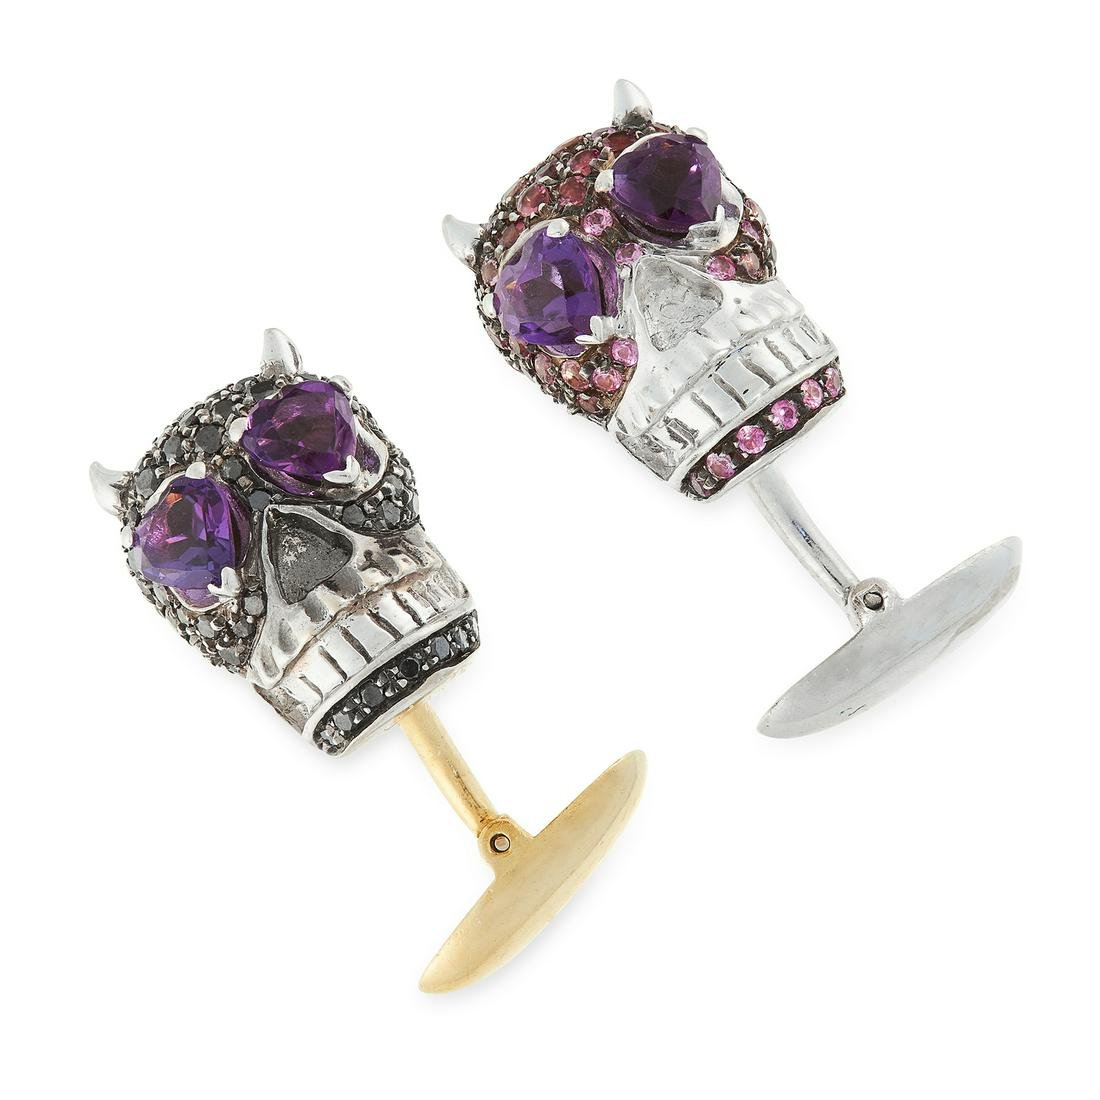 A PAIR OF GEMSET SKULL CUFFLINKS in 18ct gold, in the